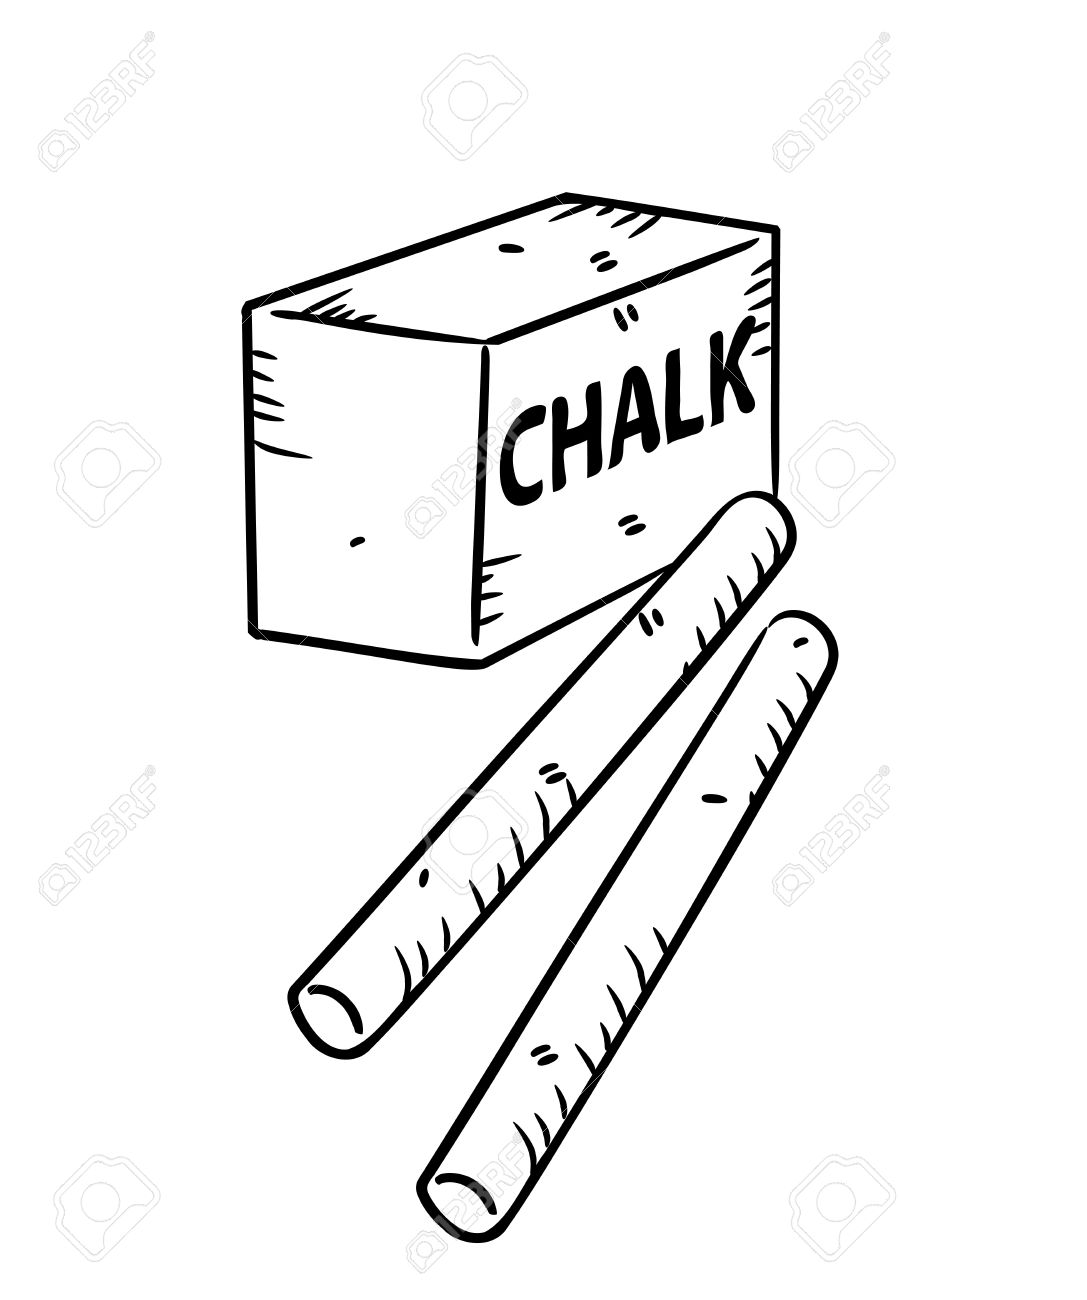 Chalk Drawing Clip Art At Getdrawings